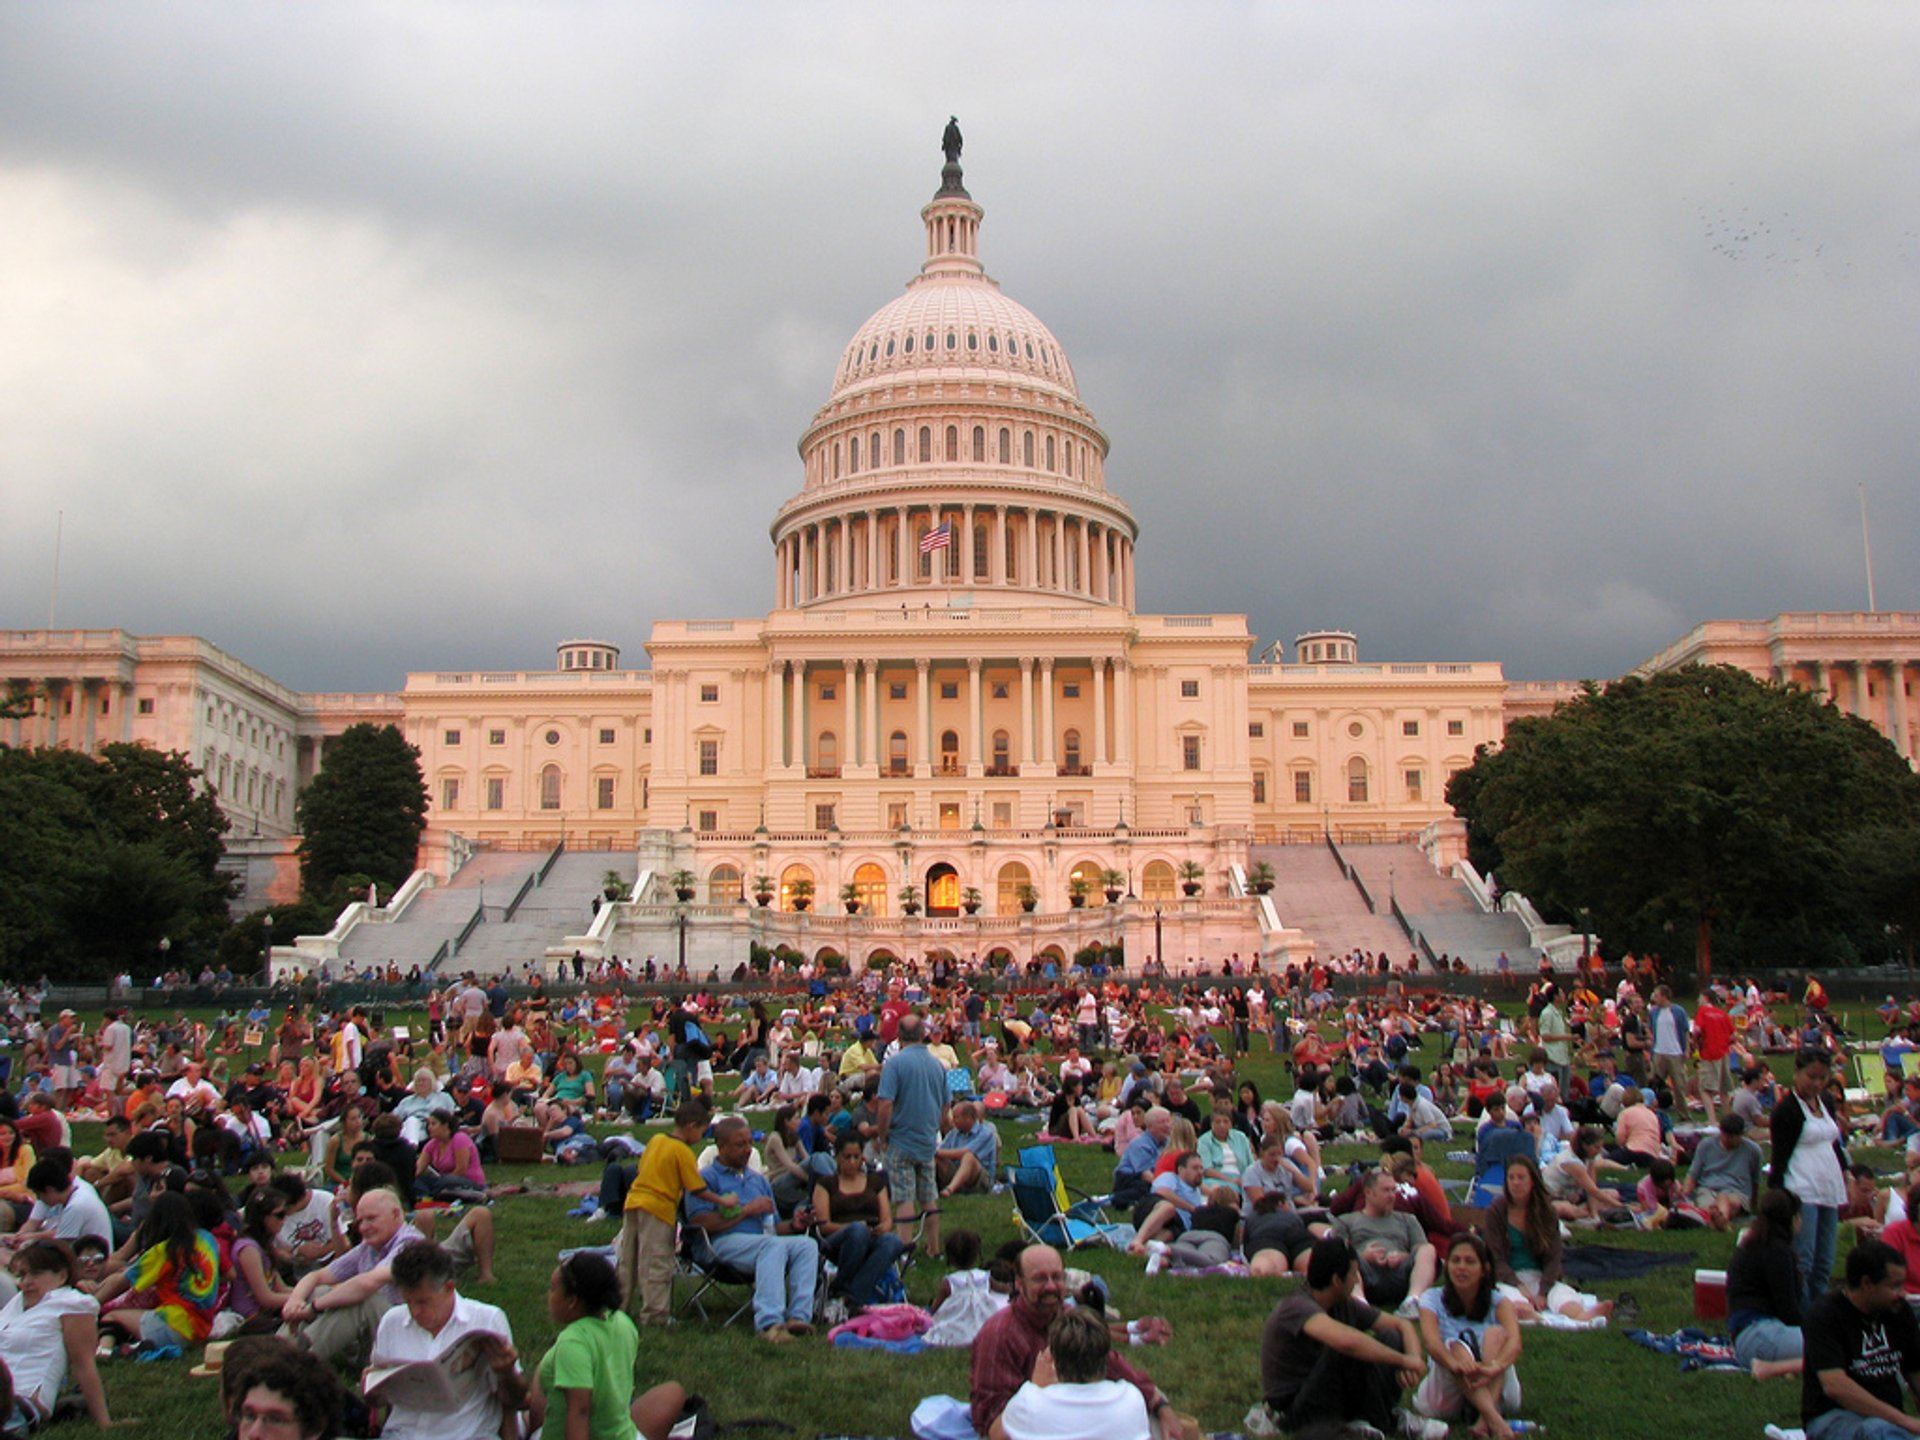 The National Symphony Orchestra: 2009 Labor Day Capitol Concert on the West Lawn on the U.S. Capitol in Washington D.C.  2019